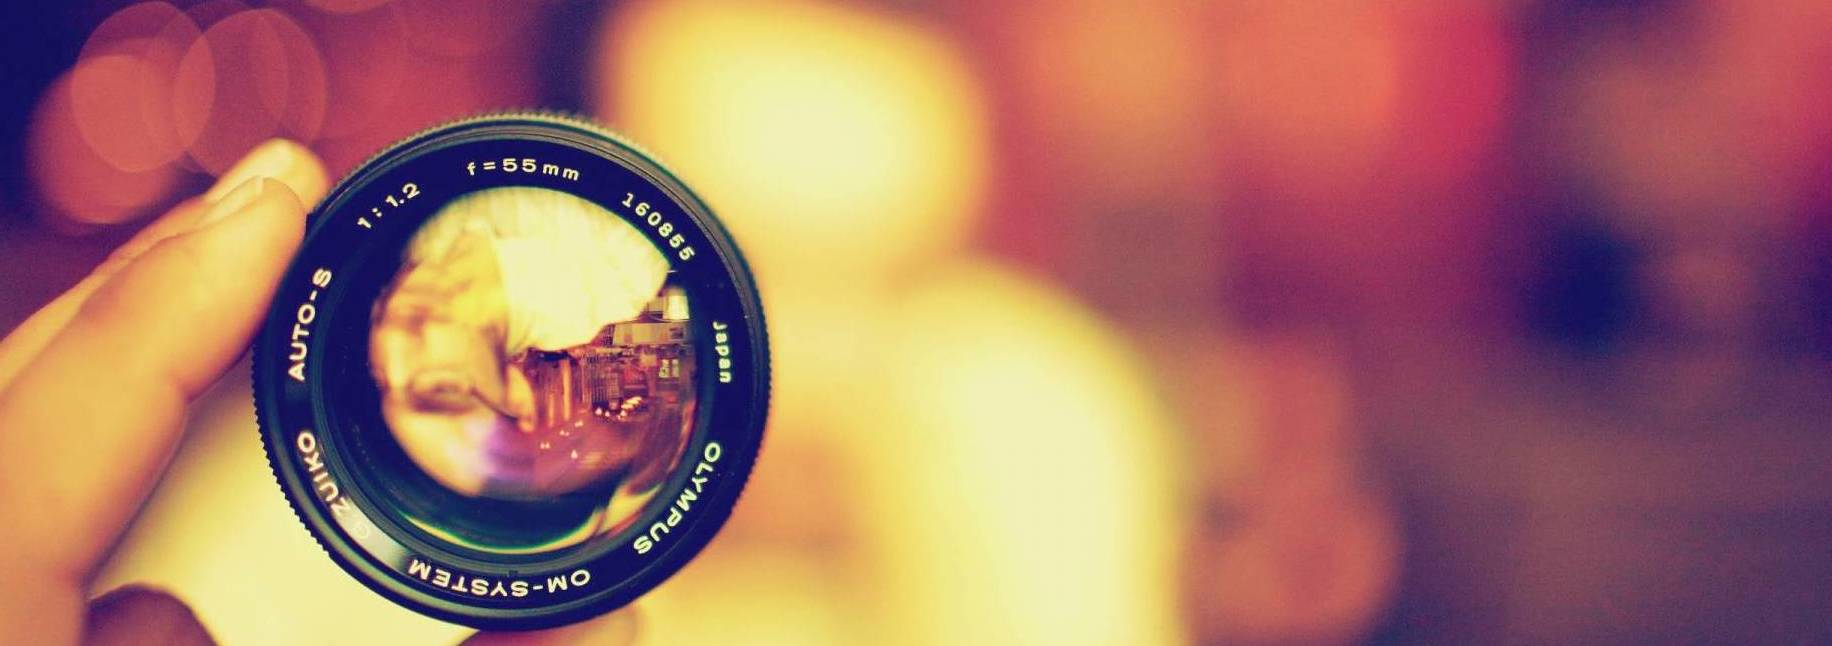 Lens-and-Bokeh-Photography-Wallpaper-for-Desktop.jpg